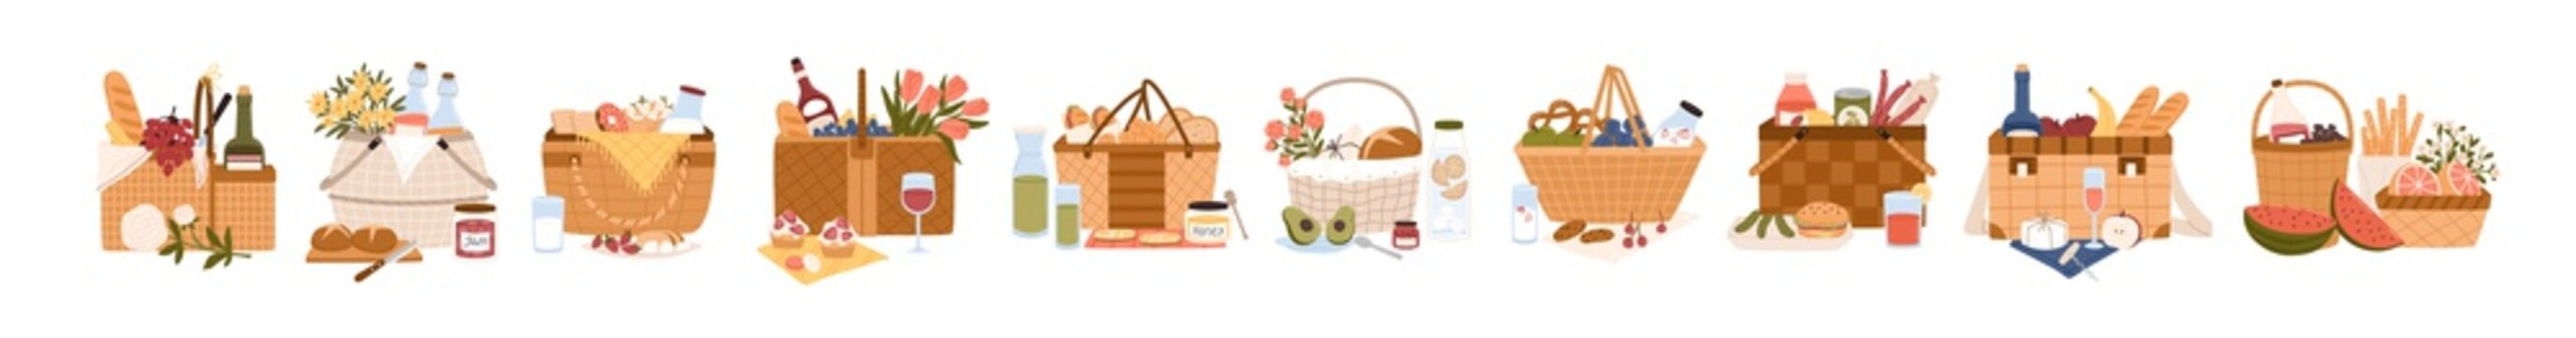 Collection of picnic baskets full of delicious meals and snacks for outdoor dining. Bundle of hampers for food storage isolated on white background. Colorful flat cartoon vector illustration.